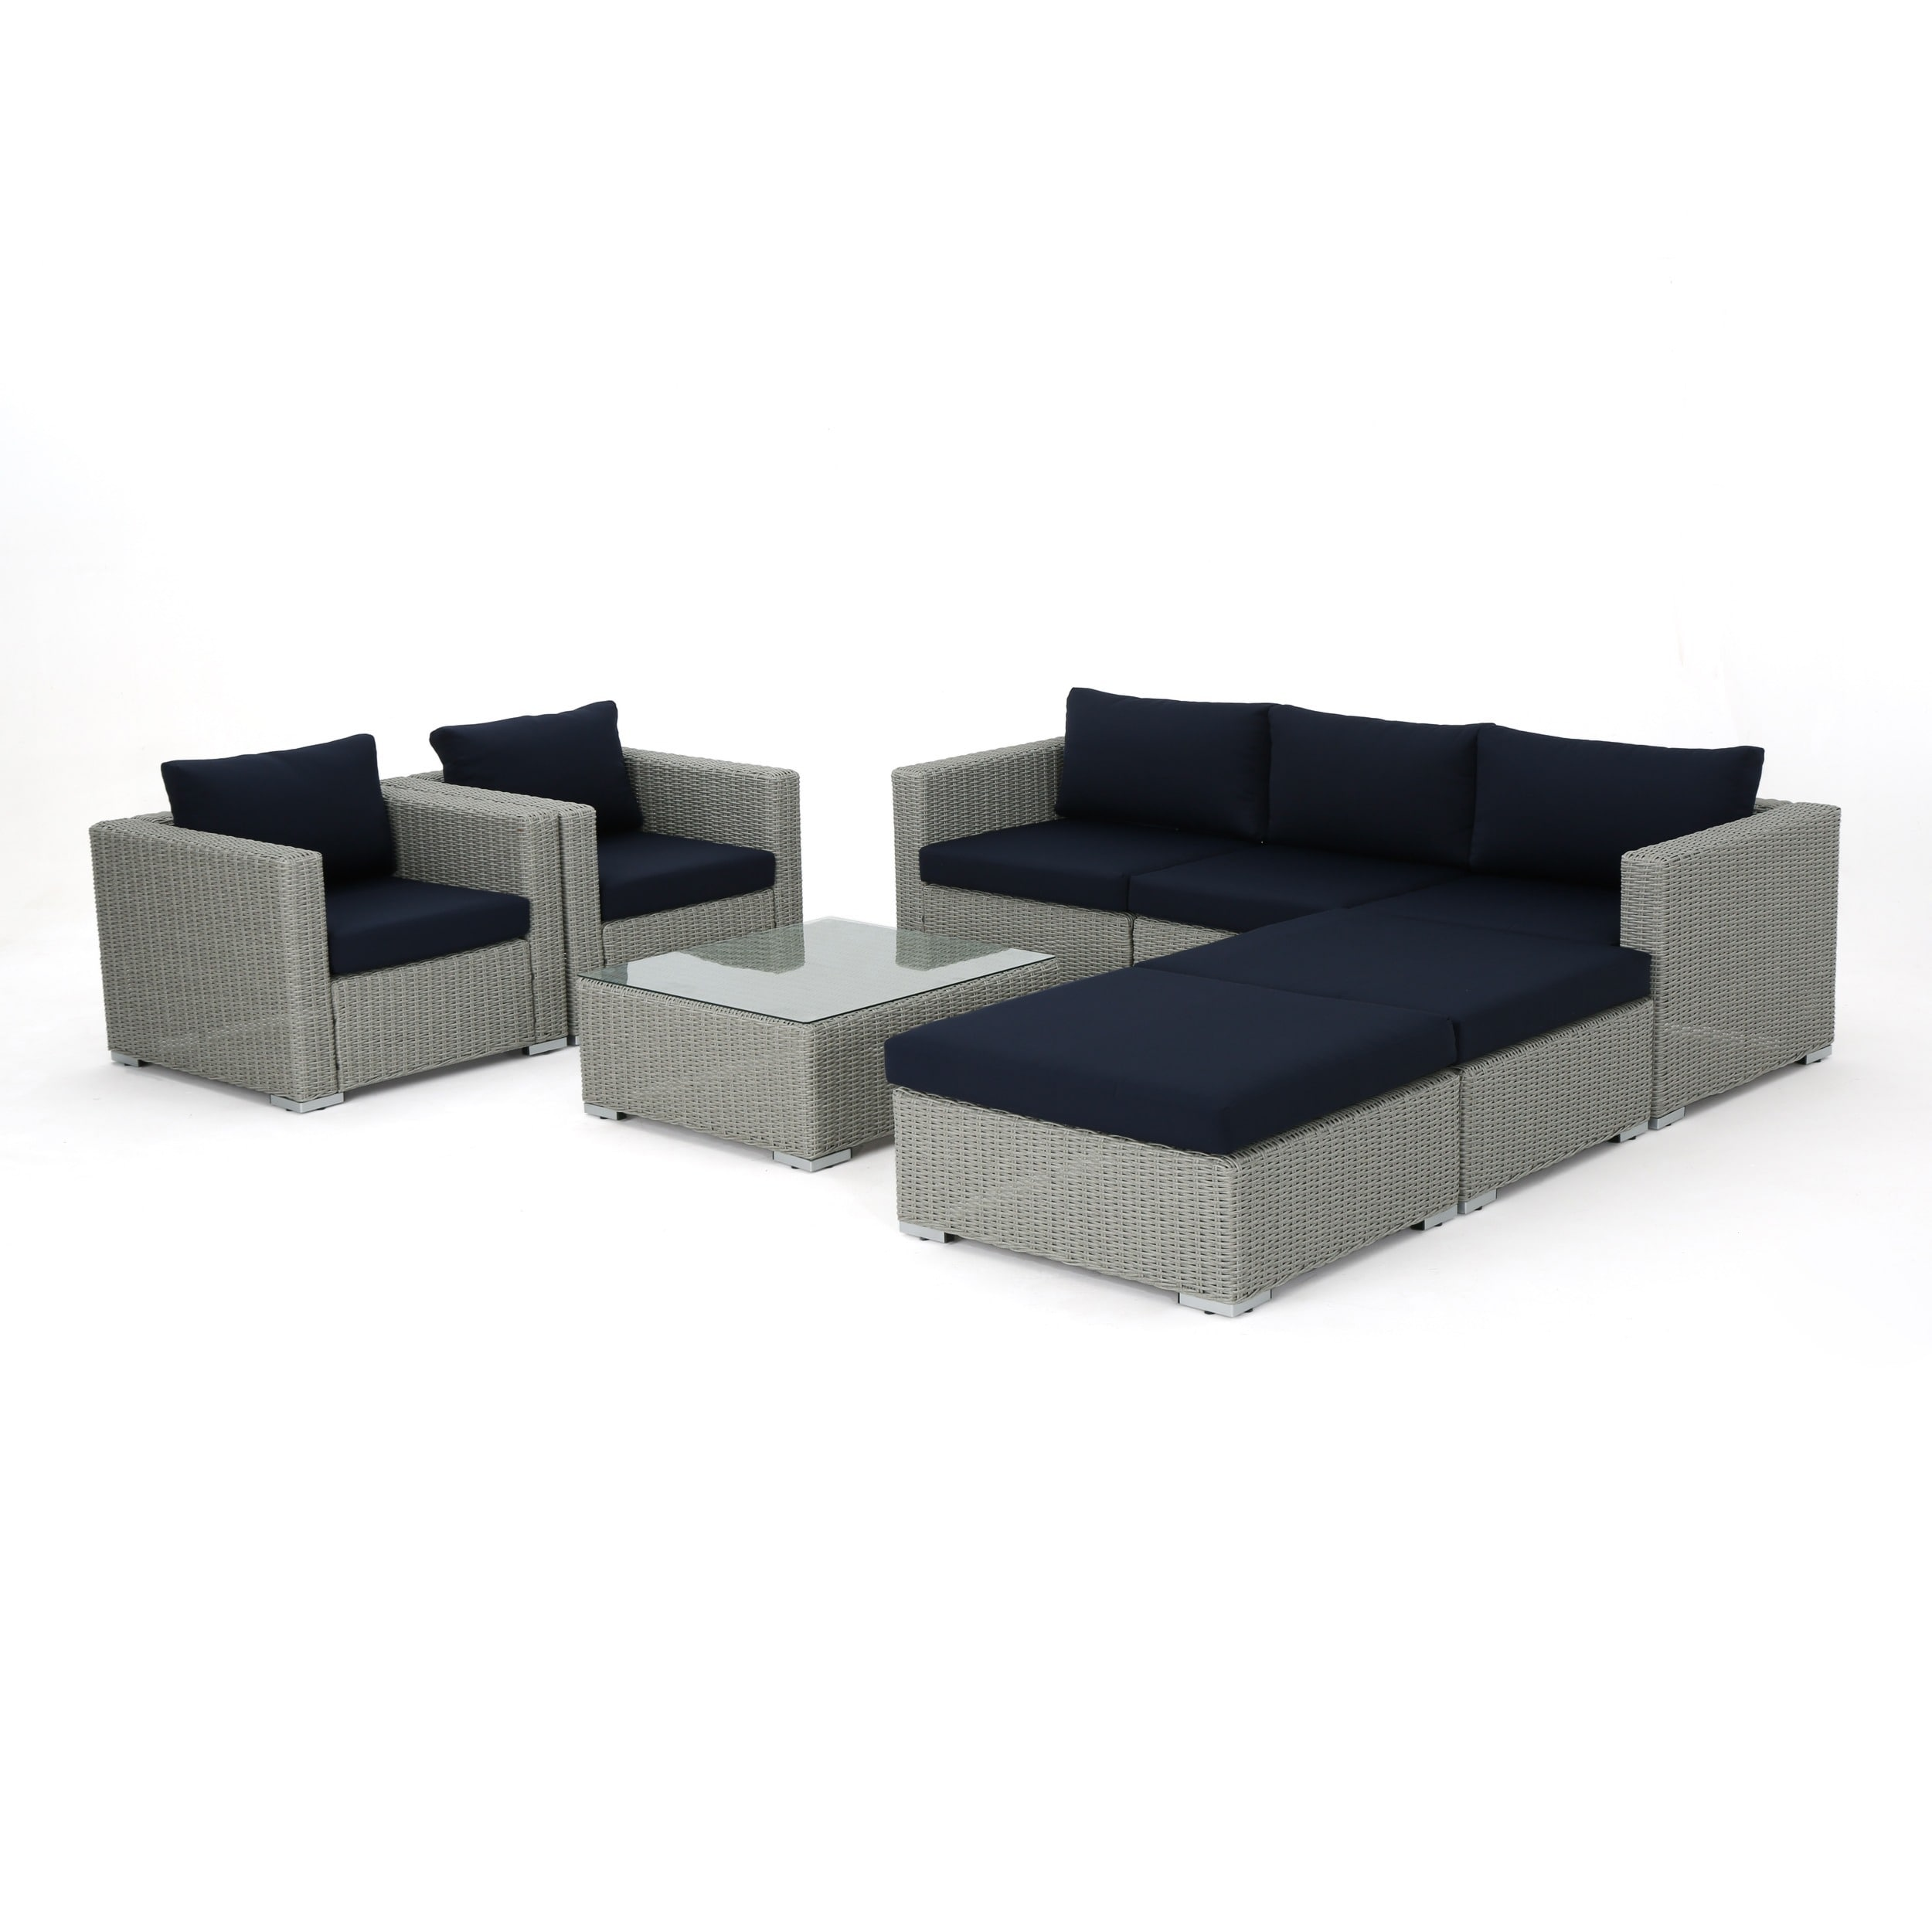 Shop Santa Rosa Outdoor 8 Piece Wicker Sectional Sofa Set With